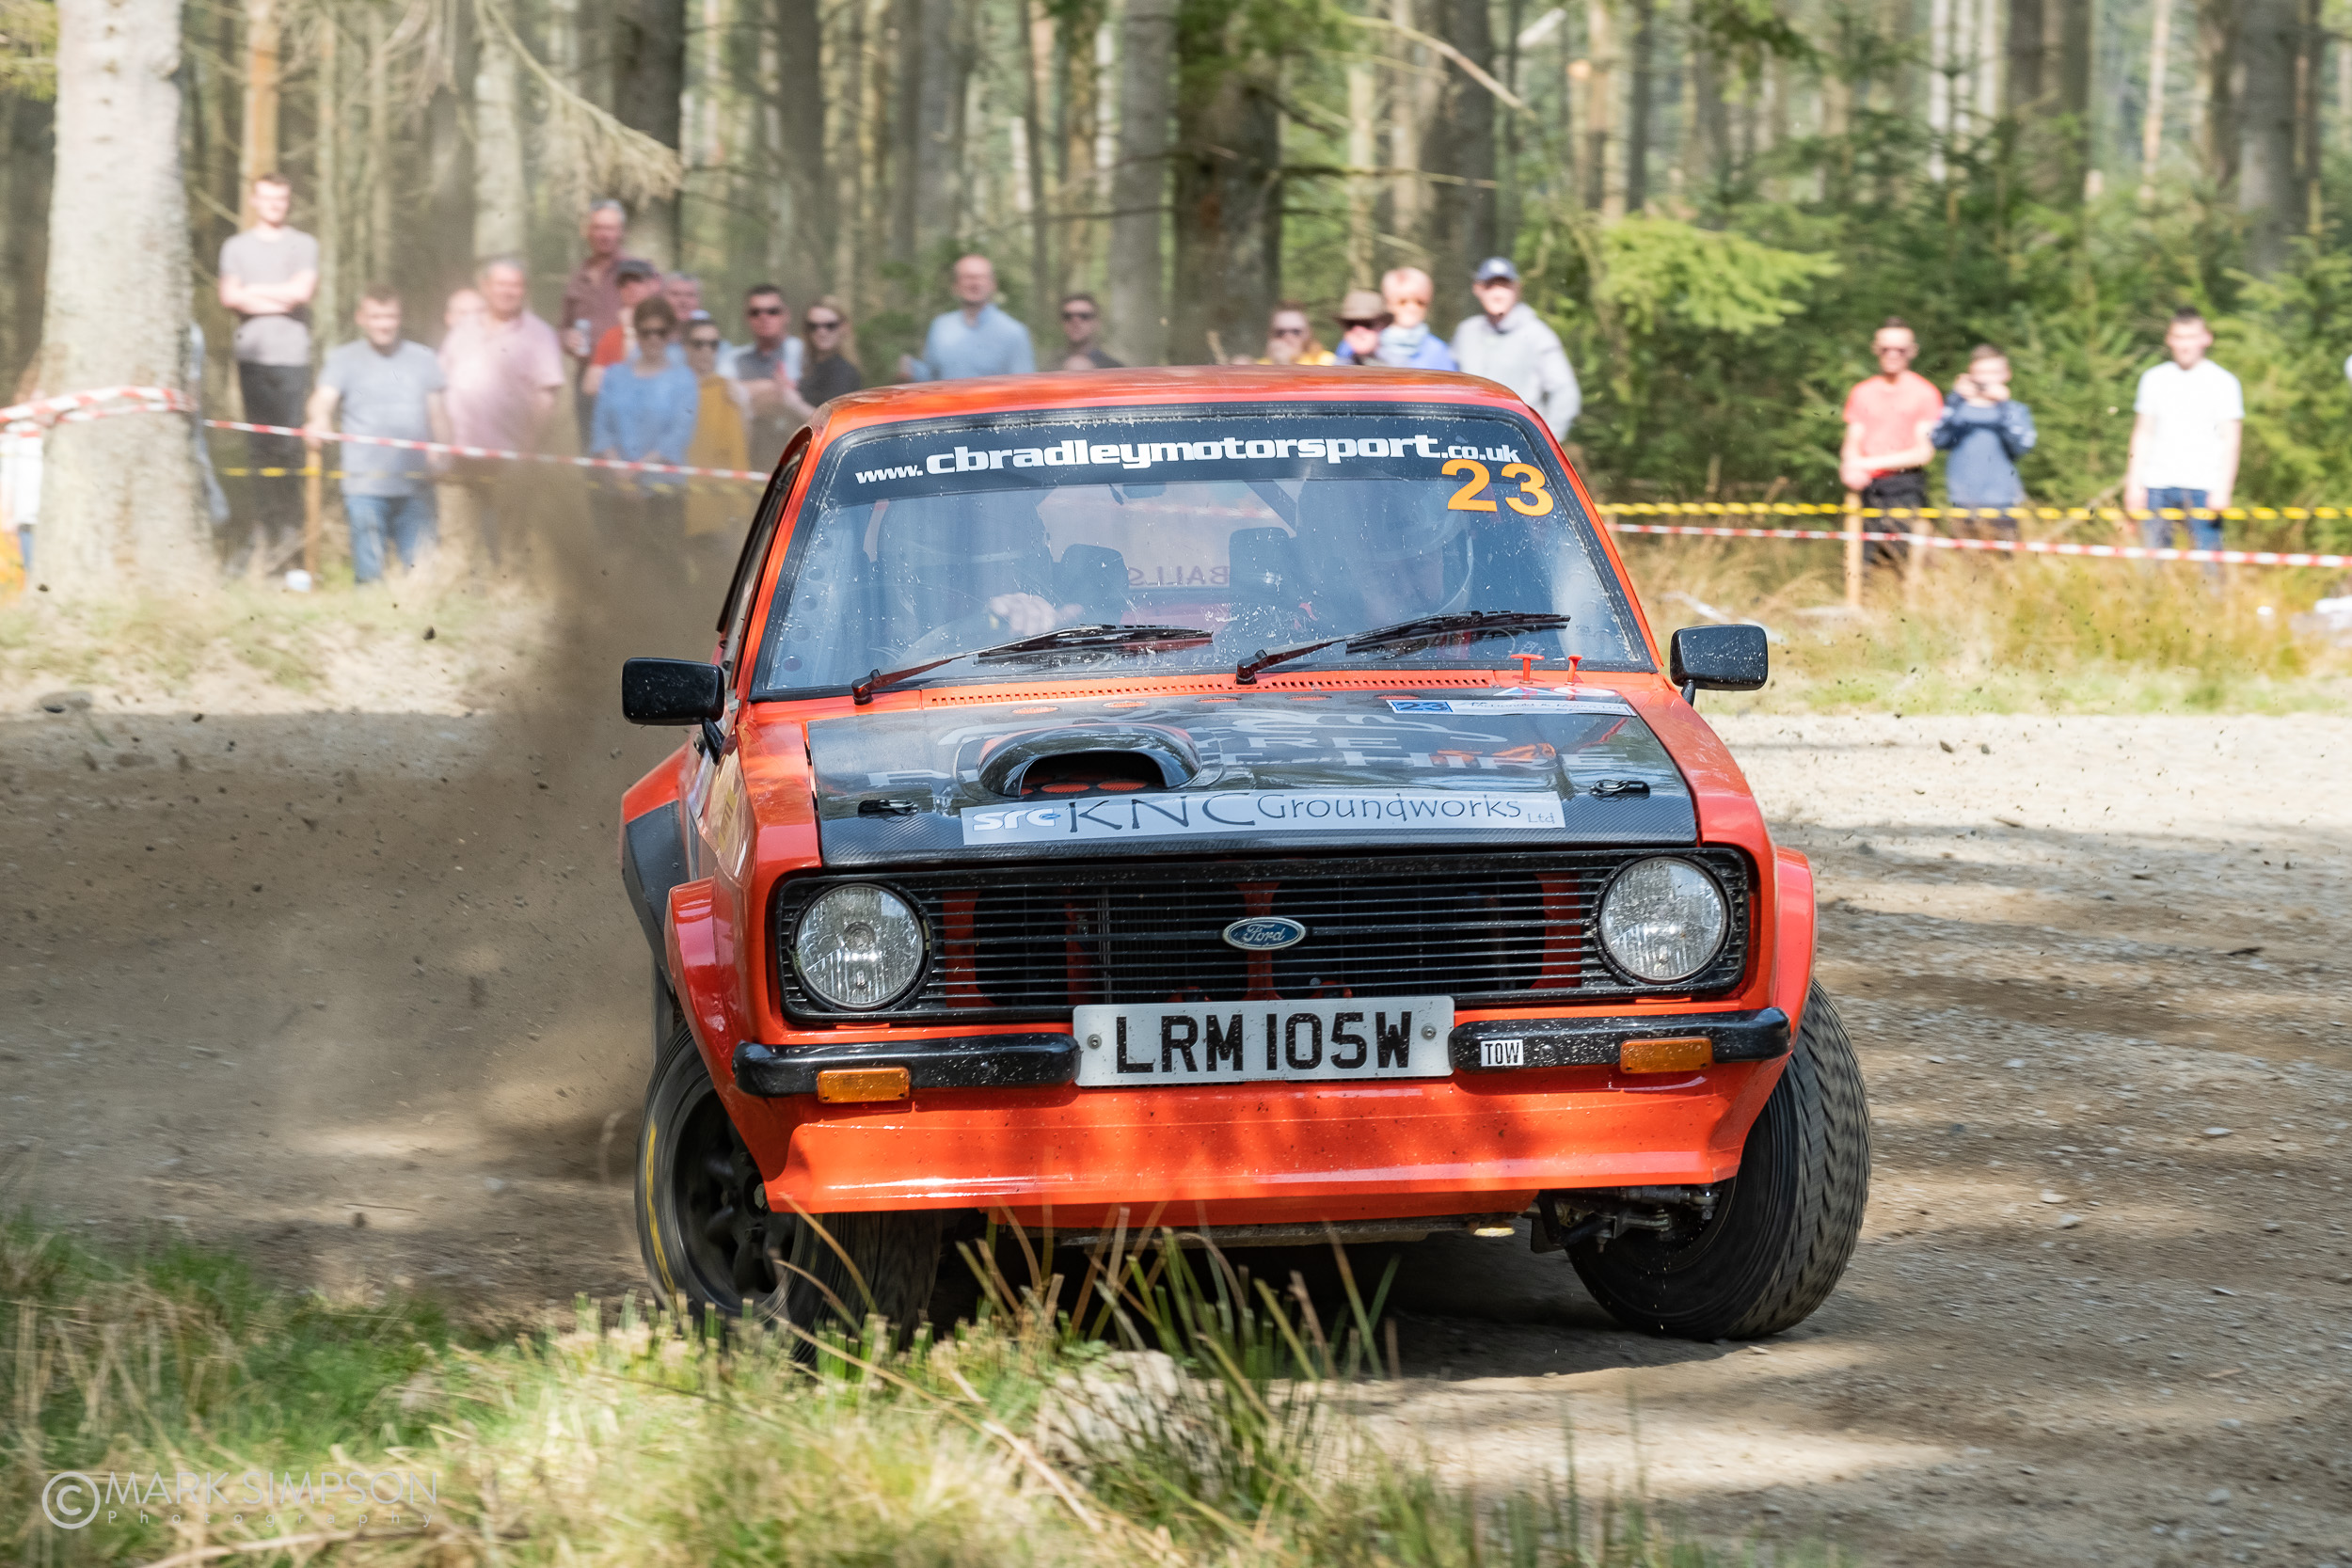 Top 2-wheel drive car, and 13th overall, Isle of Skye crew Duncan MacDonald and Neil Ross, Ford Escort Mk2.